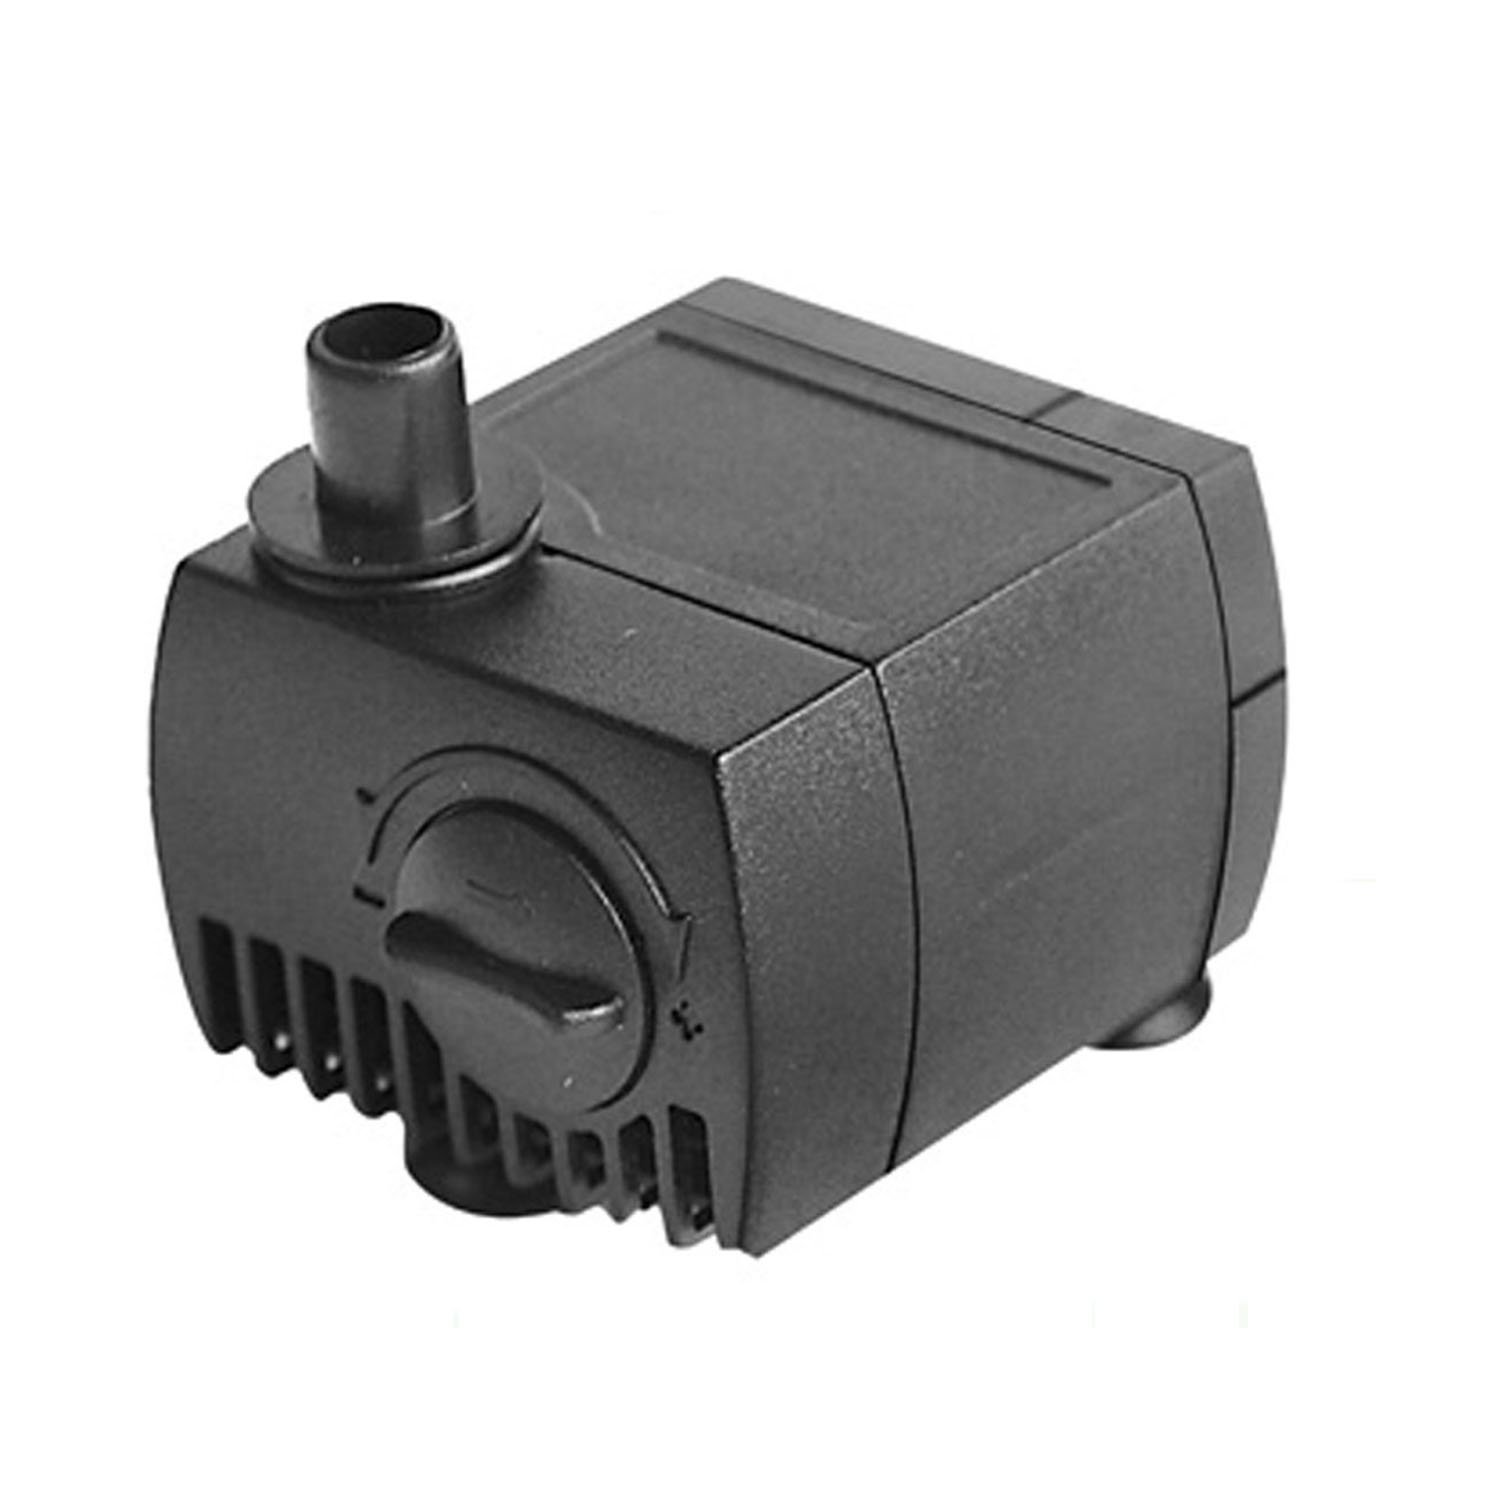 80 GPH (300L/H) Submersible Water Pump For Pond, Aquarium, Fish Tank Fountain Water Pump Hydroponics with 4.9ft (1.5m) Power Cord